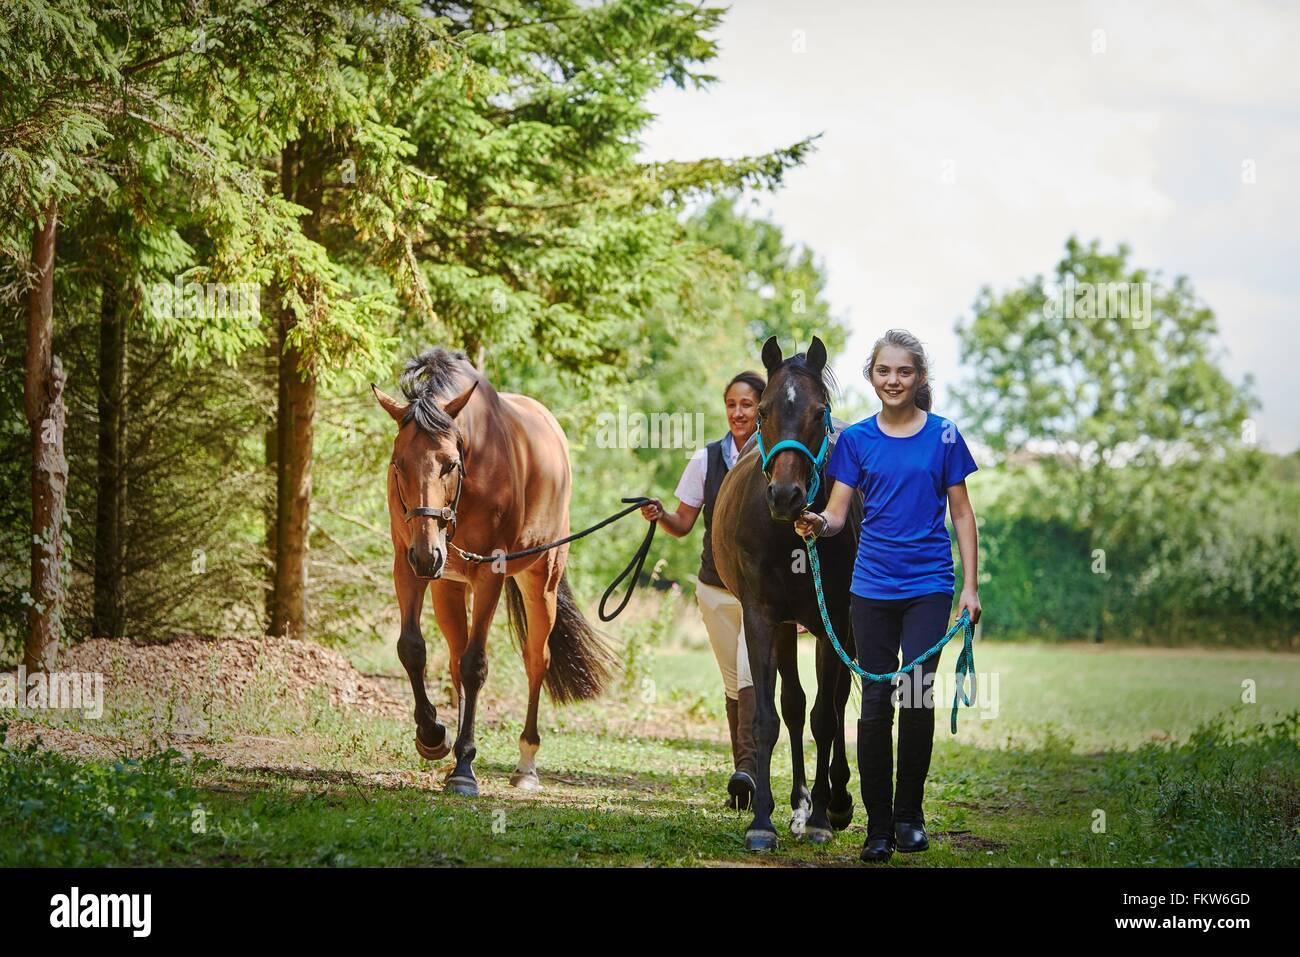 Full length front view of girl and mature woman holding lead rope, walking with horses looking at camera smiling - Stock Image